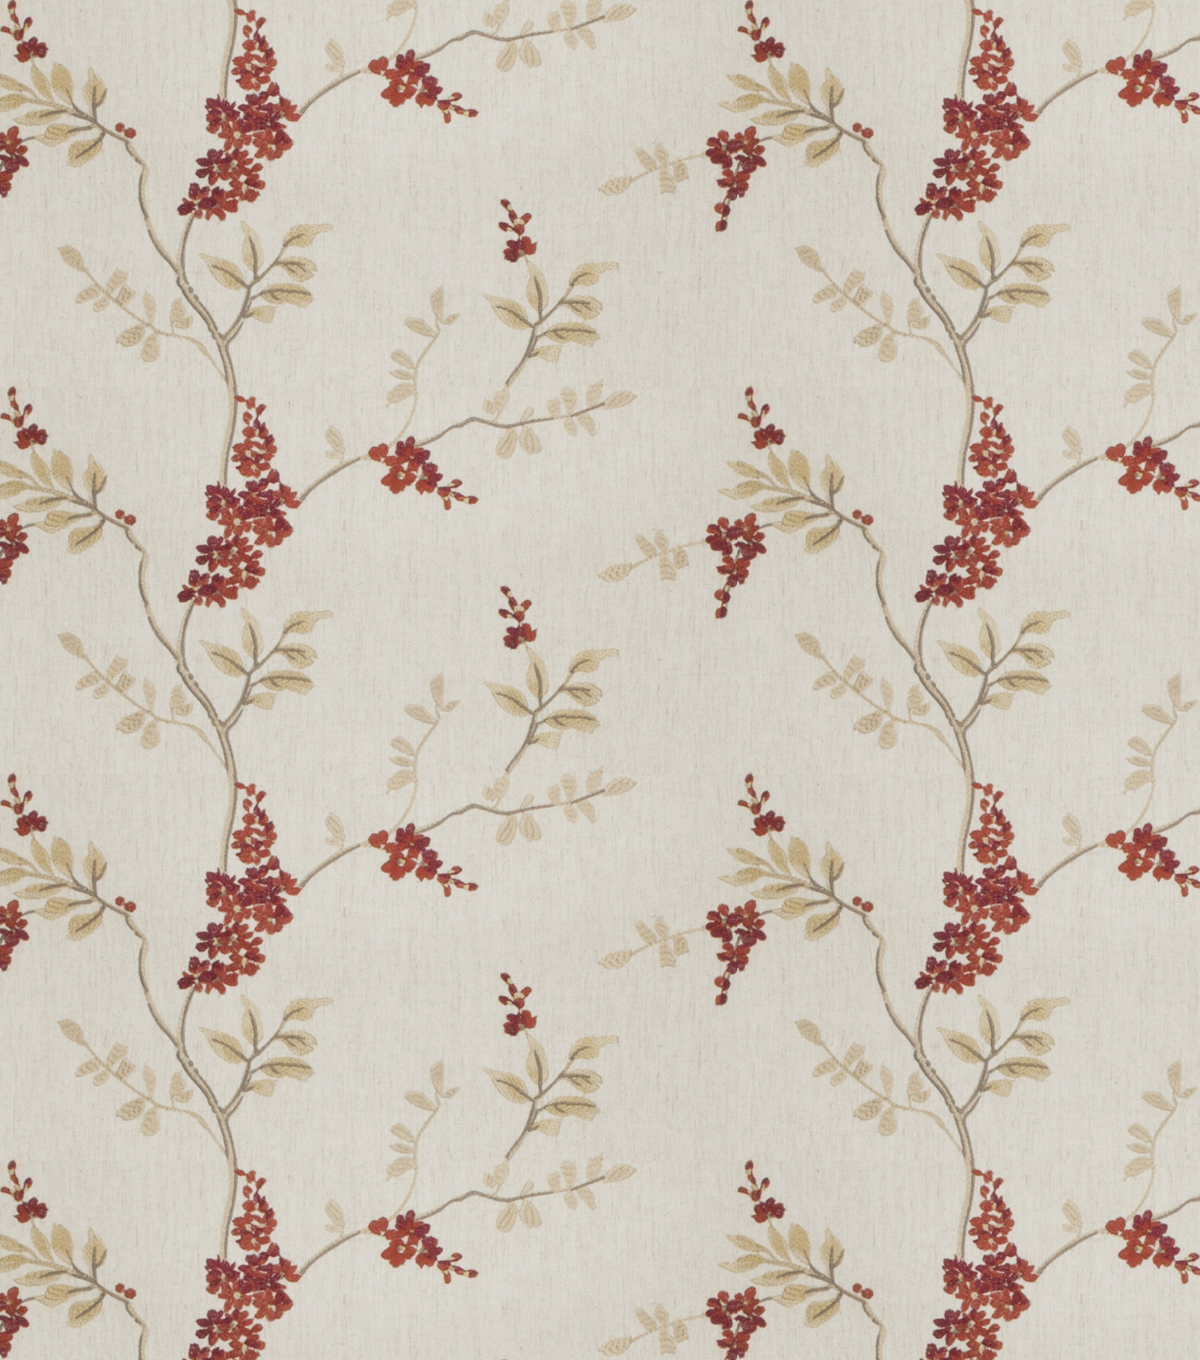 Eaton Square Lightweight Decor Fabric 51\u0022-Rosehips/Garnet